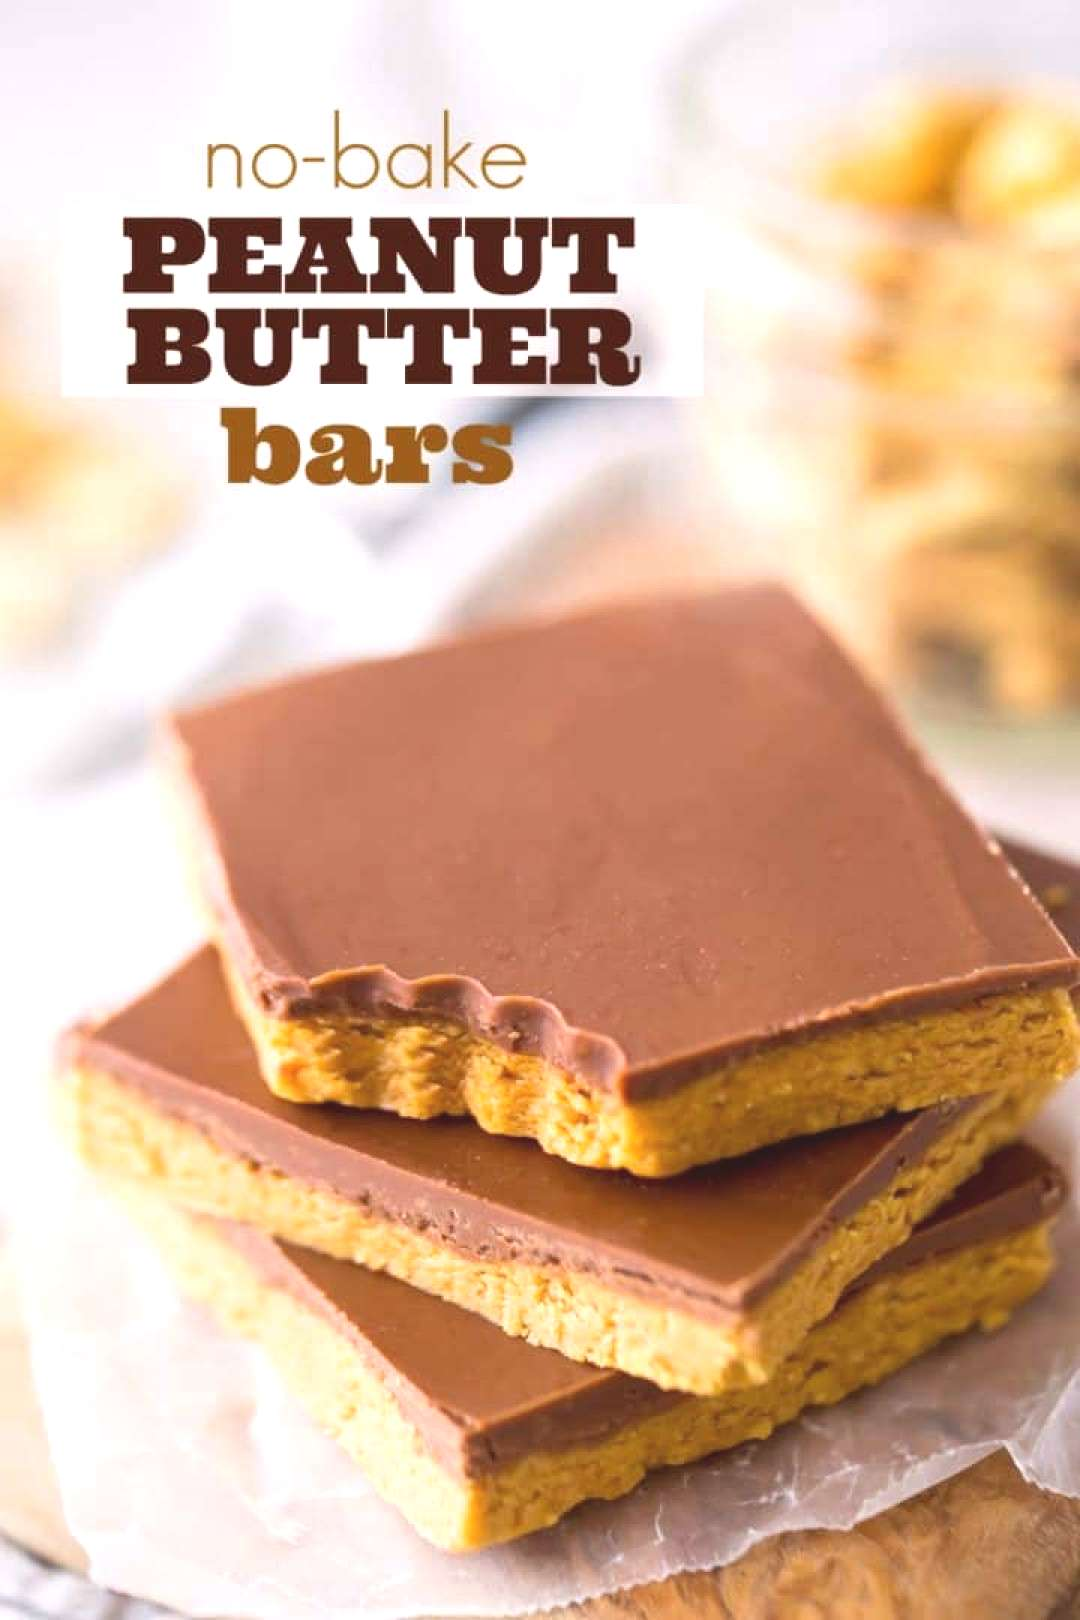 Peanut Butter Bars: taste just like a Reese's peanut butter cup! Easy, no bake recipe with just 4 s